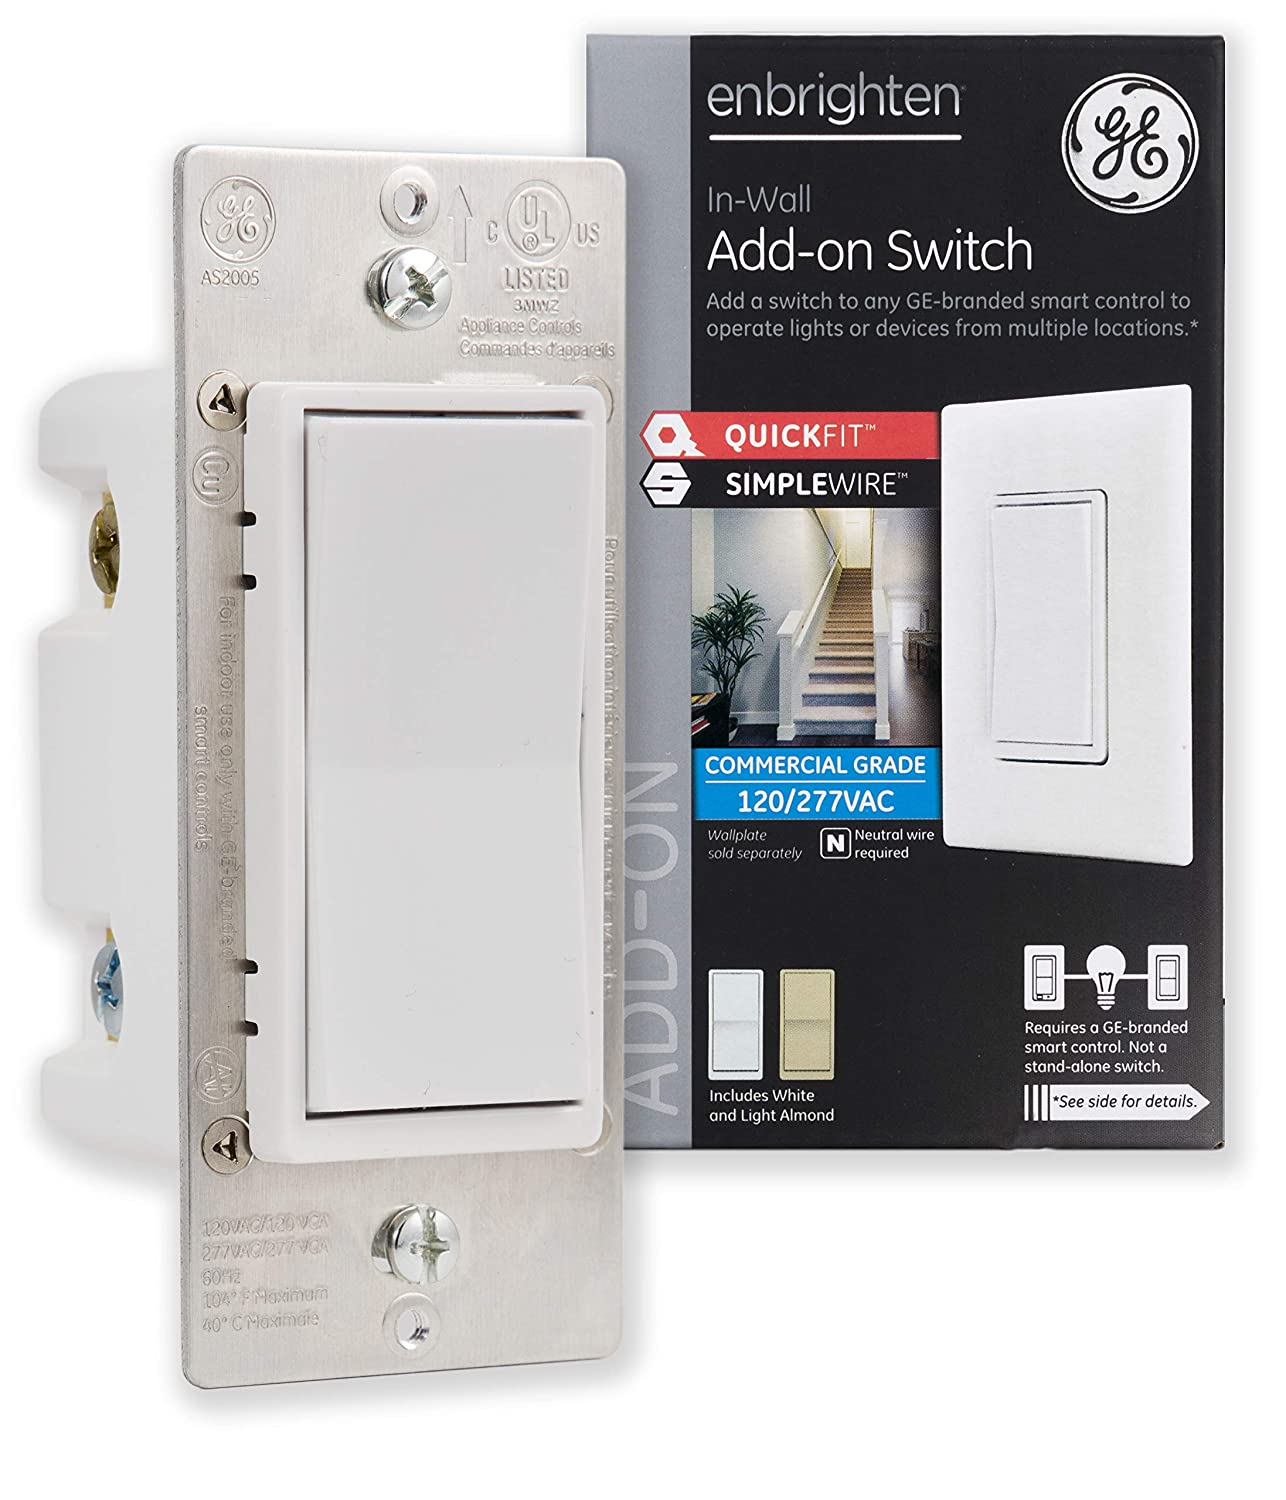 GE Enbrighten Add QuickFit and SimpleWire, in-Wall Paddle, Z-Wave ZigBee Wireless Smart Lighting Controls, NOT A STANDALONE Switch, 46199, White & Light Almond